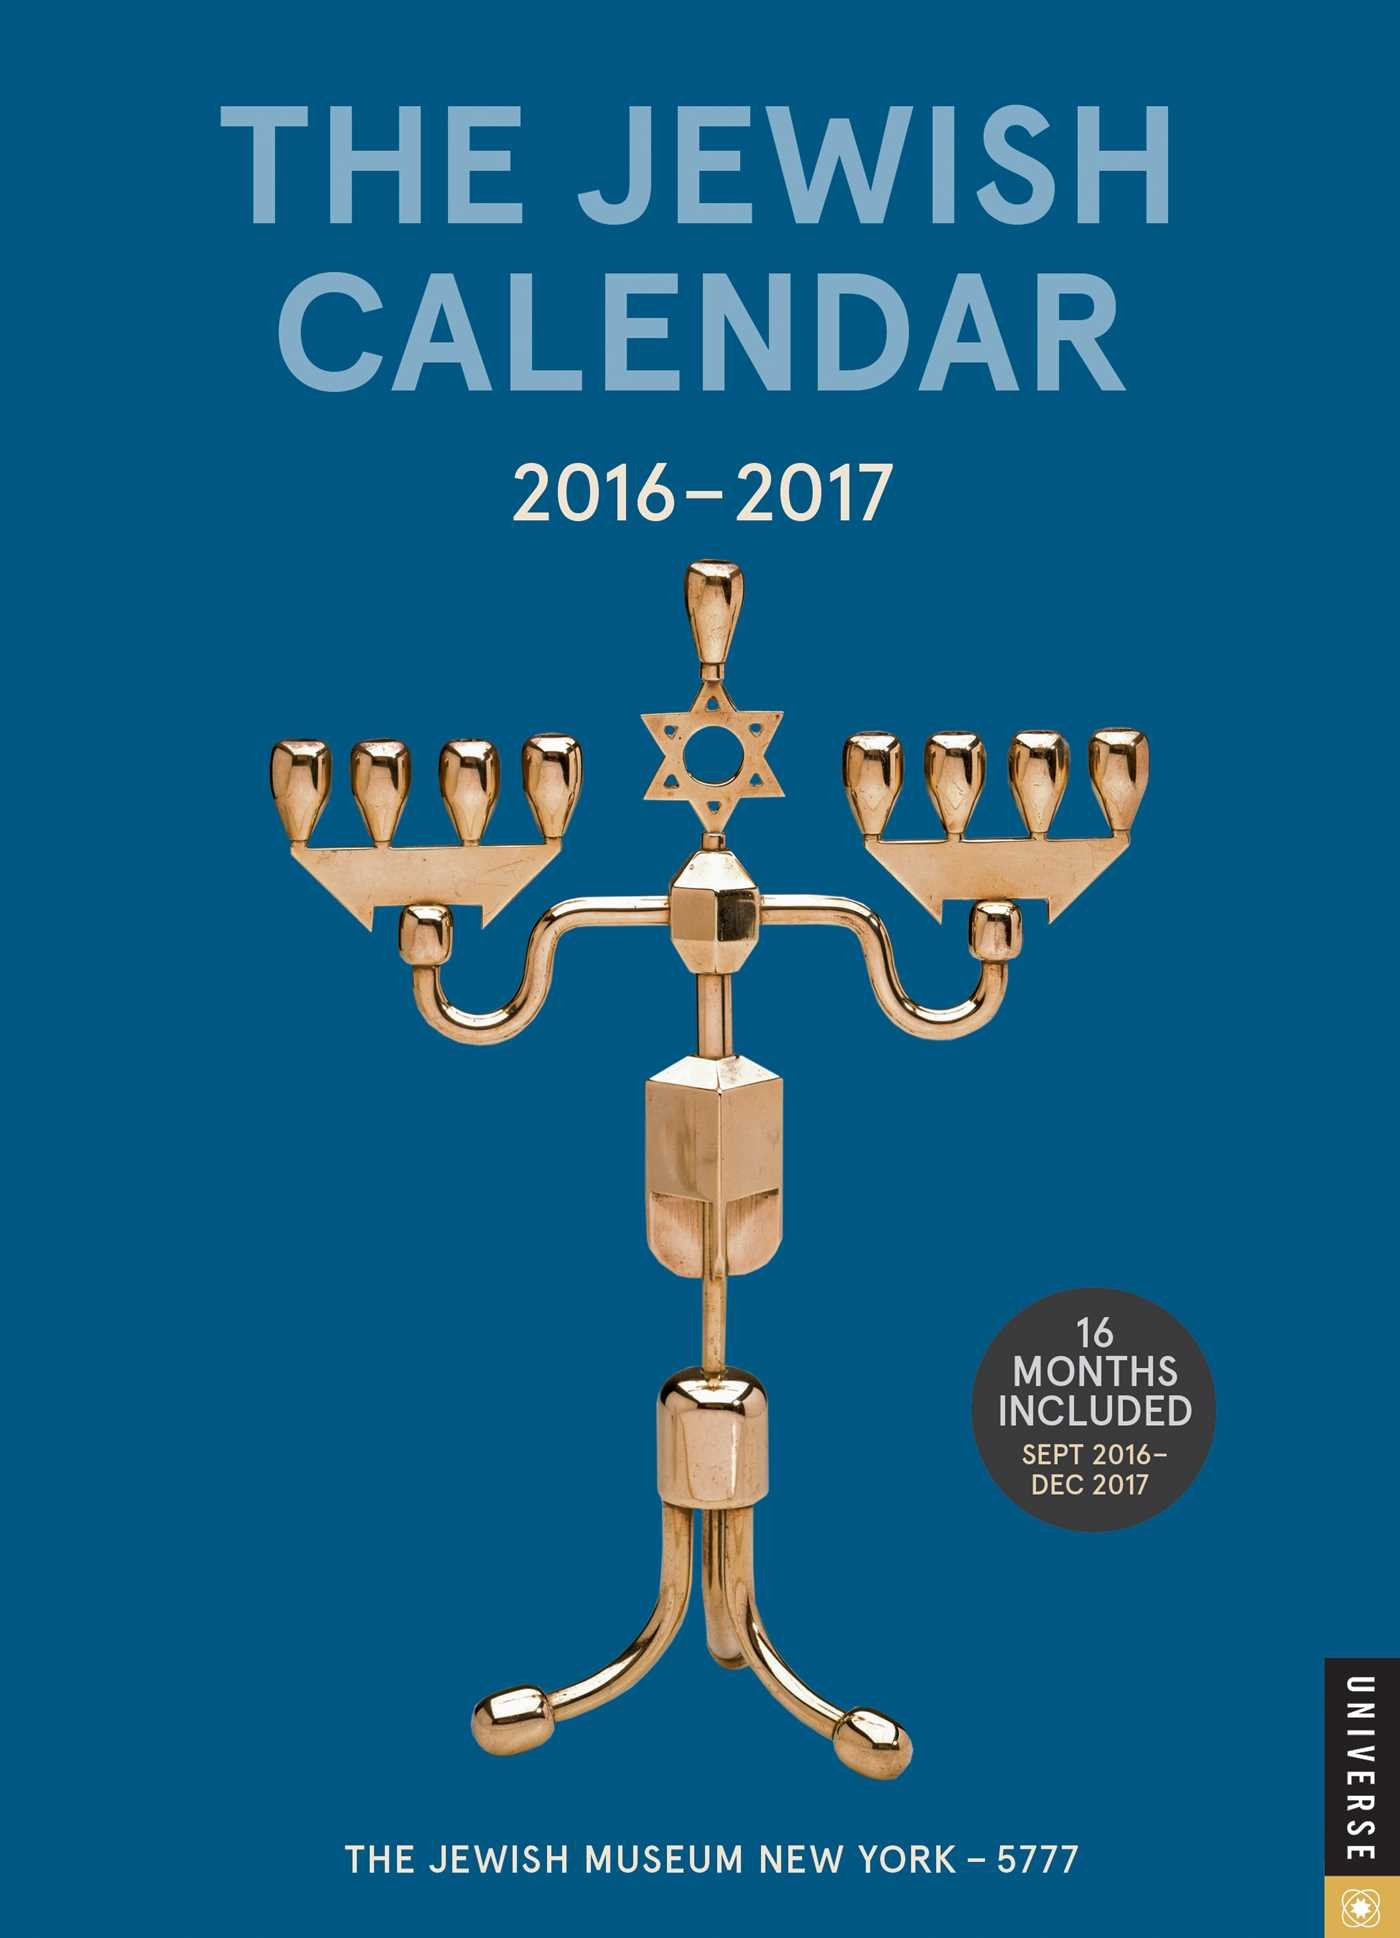 Jewish Calendar 2016 2017 16 Month Engagement product image